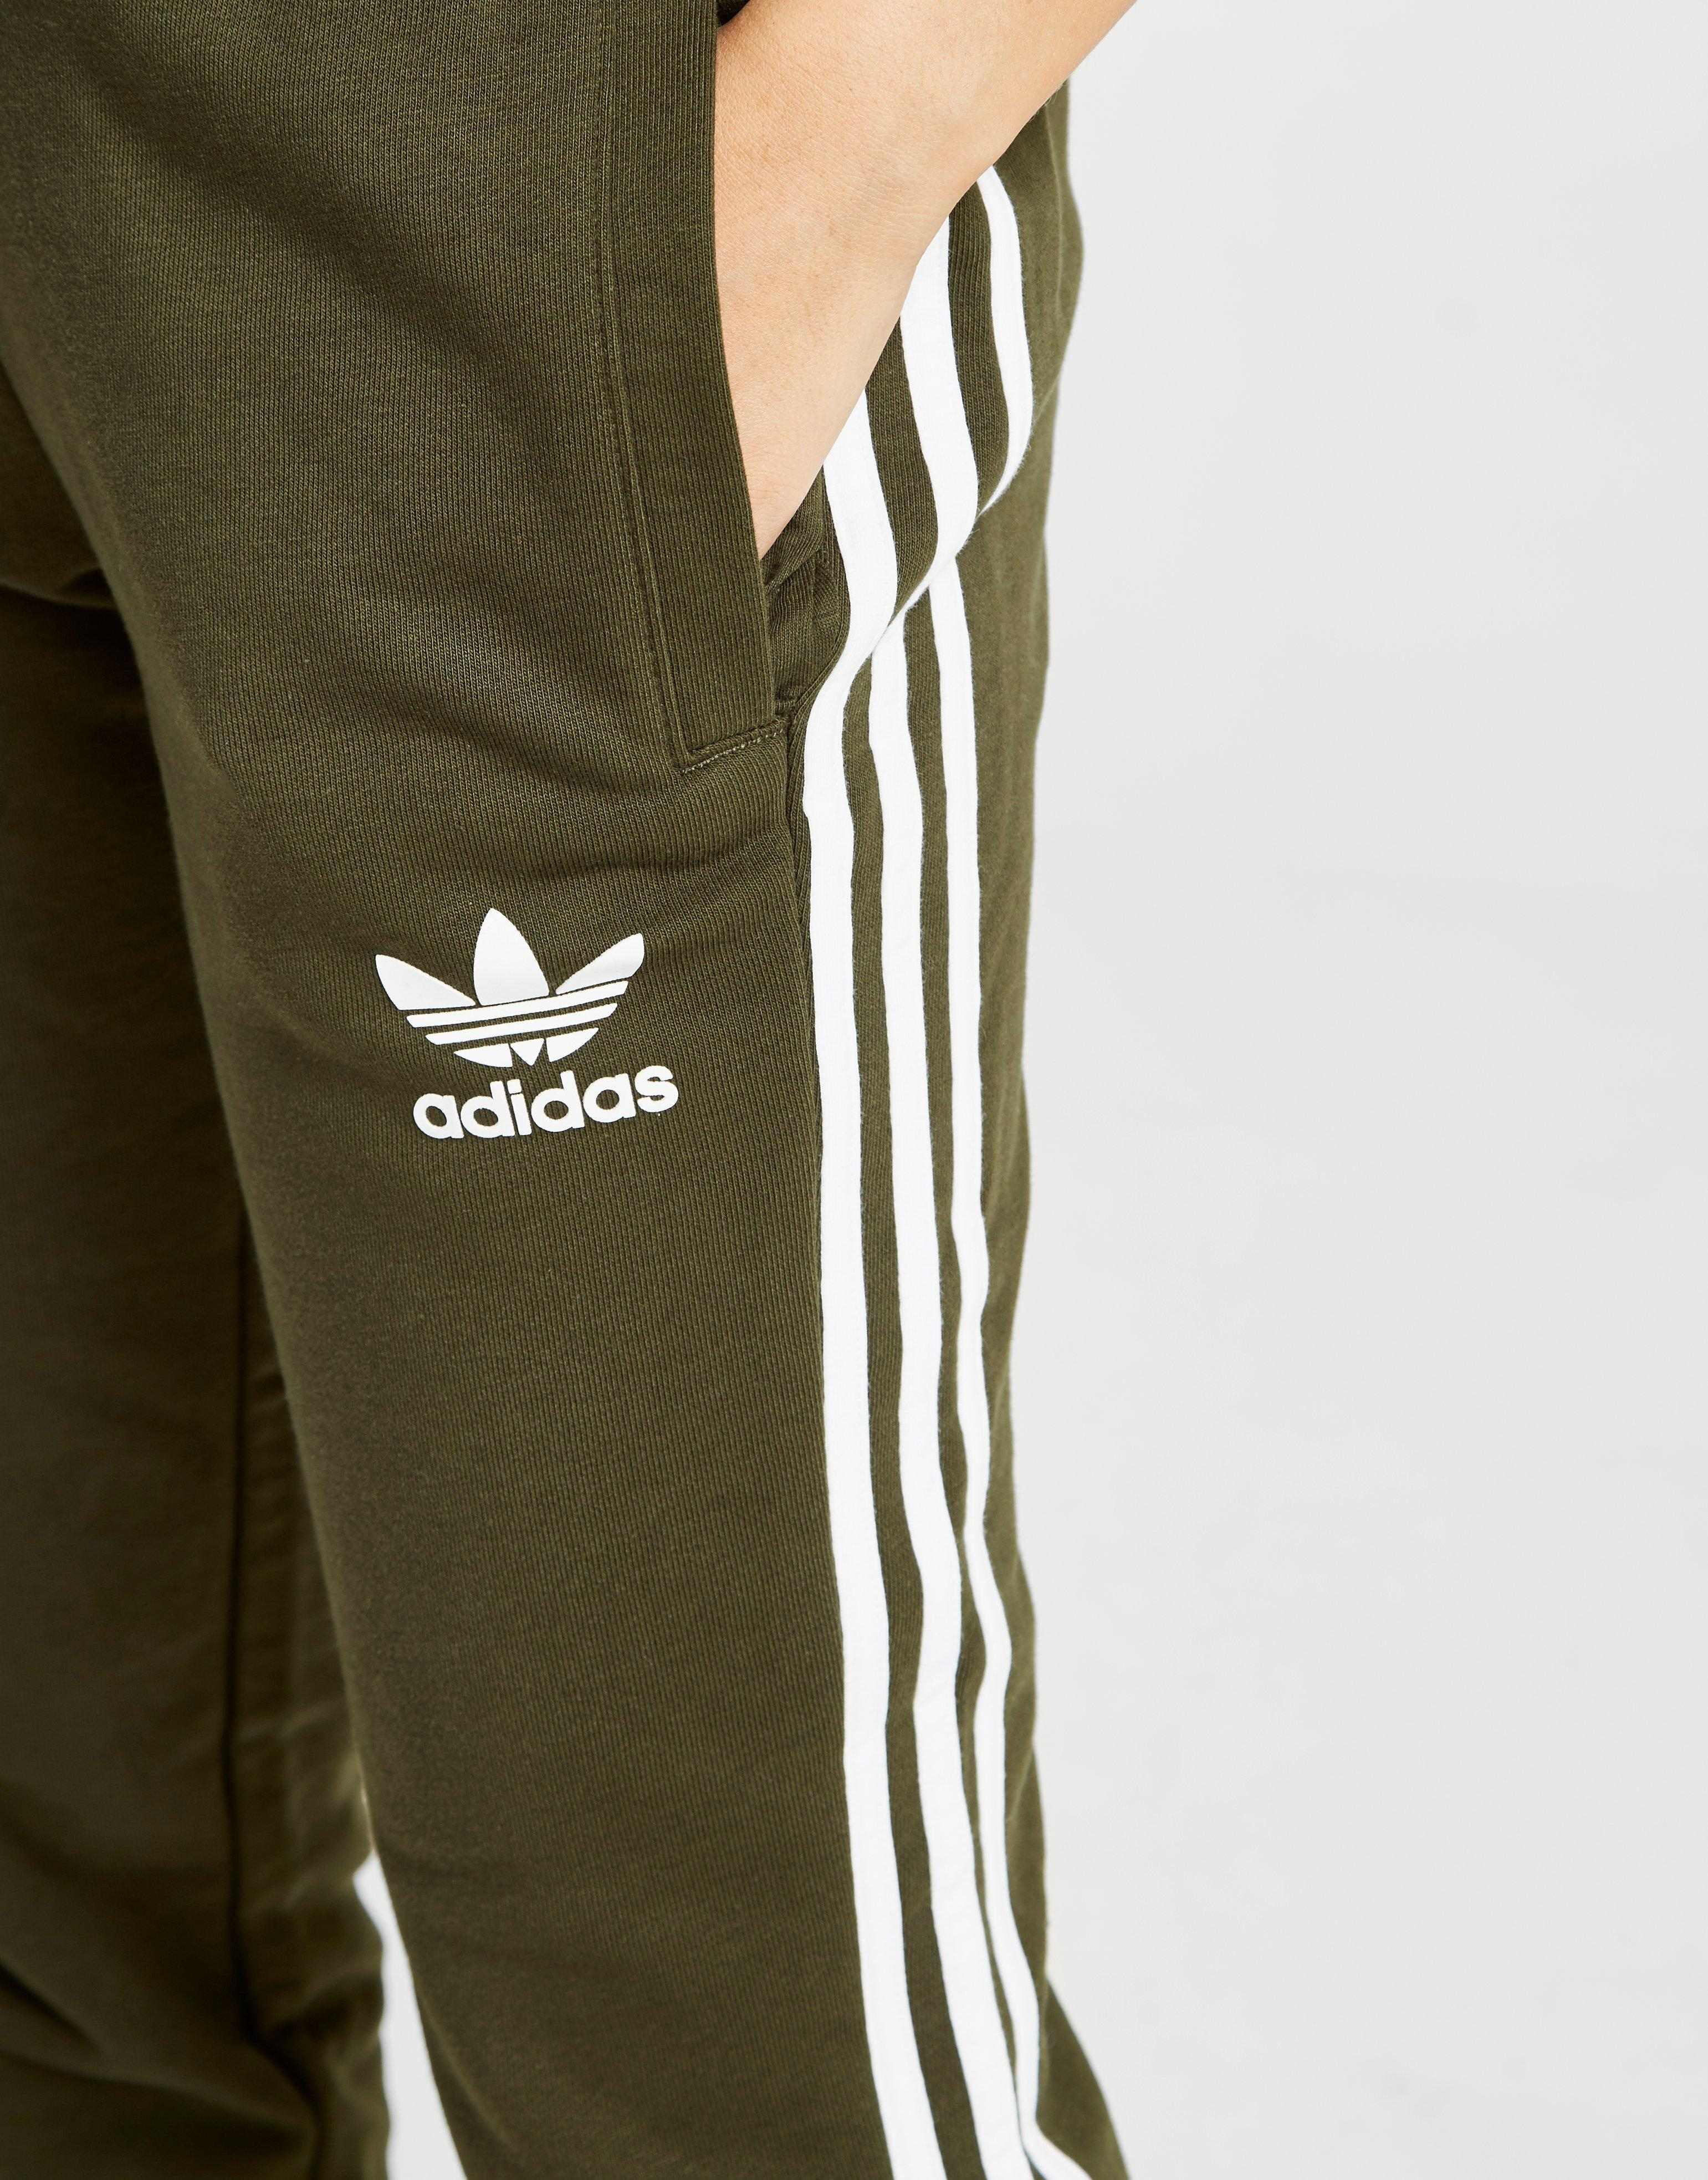 d0999988d84 adidas Originals 3-stripes California Fleece Track Pants in Green - Lyst